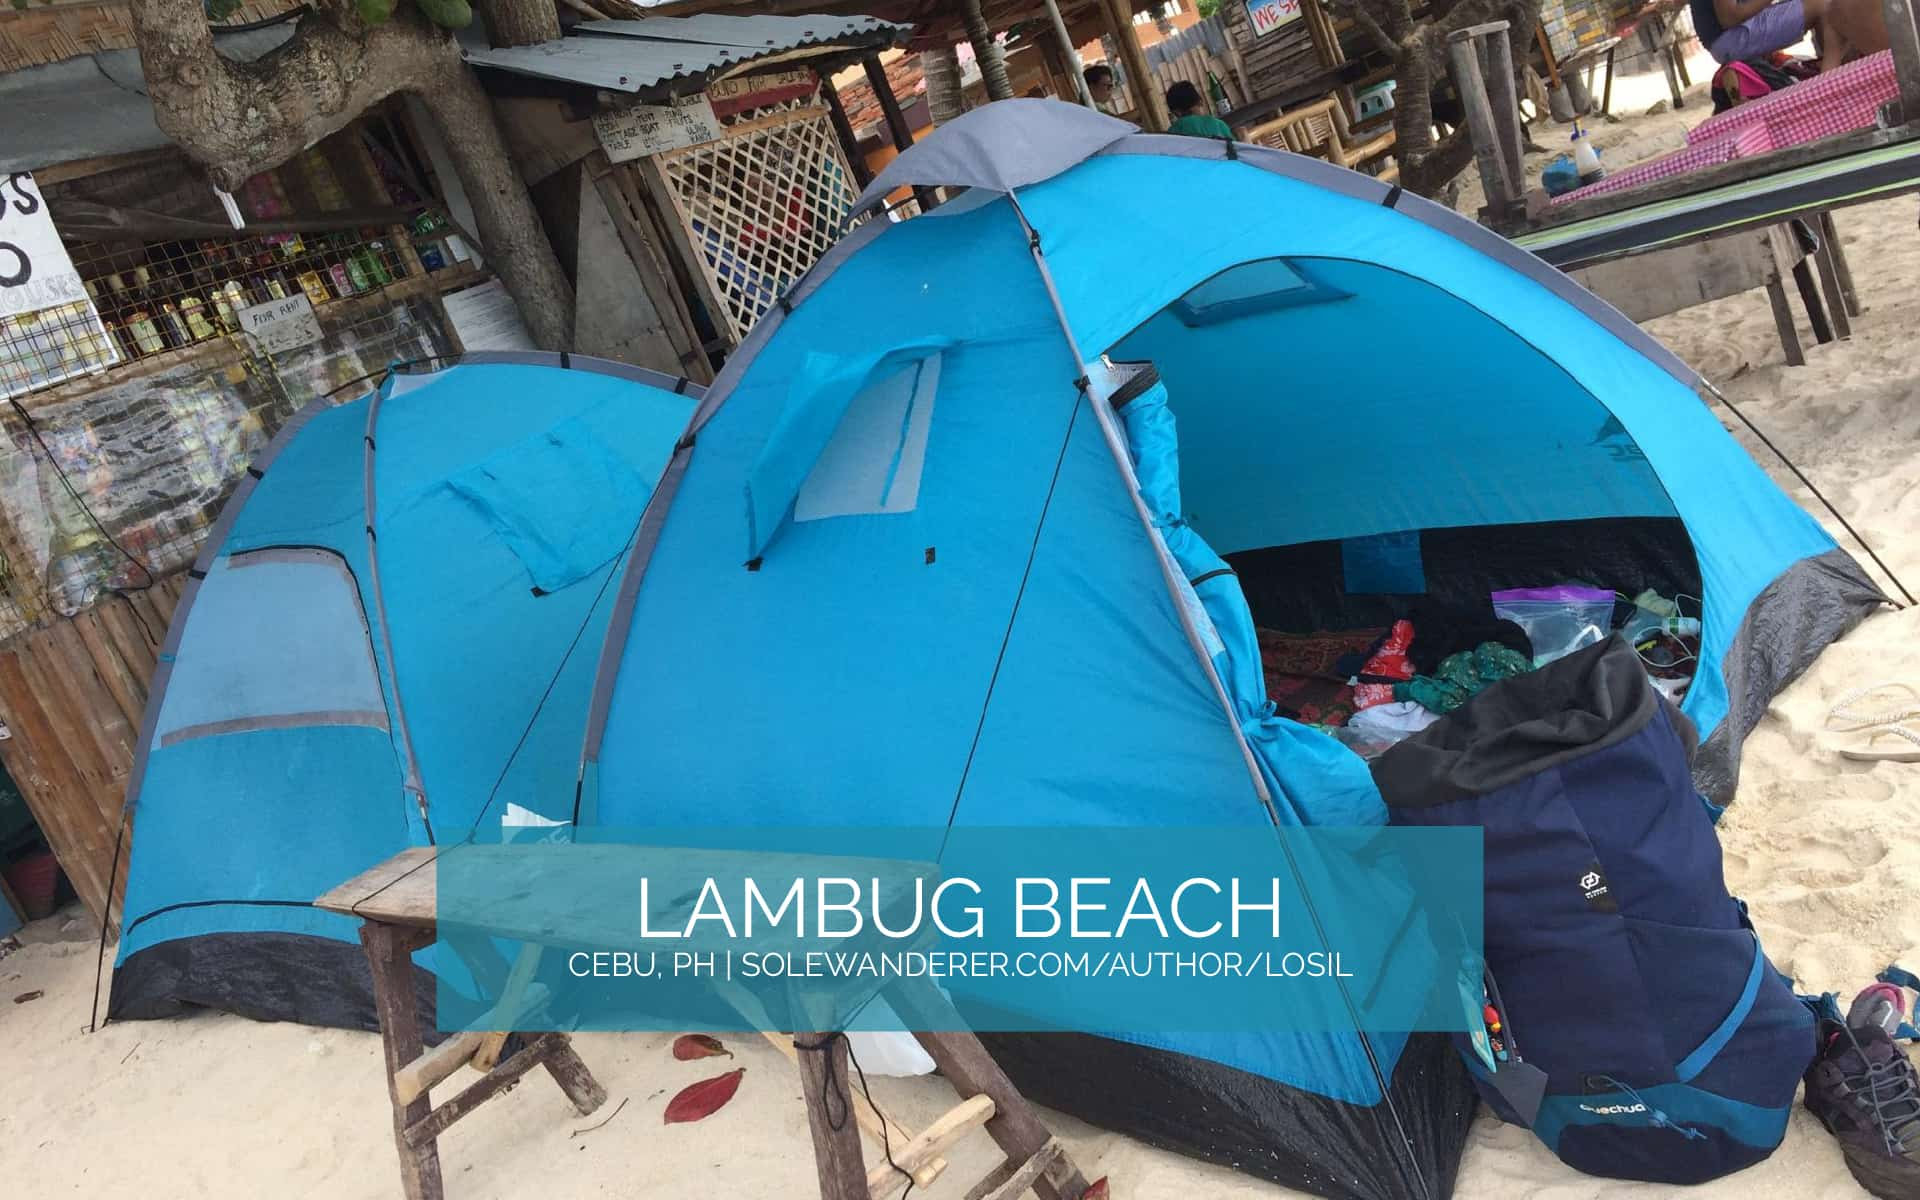 Available Tents for Rent, Lambug Beach Cebu - The Sole Wanderer